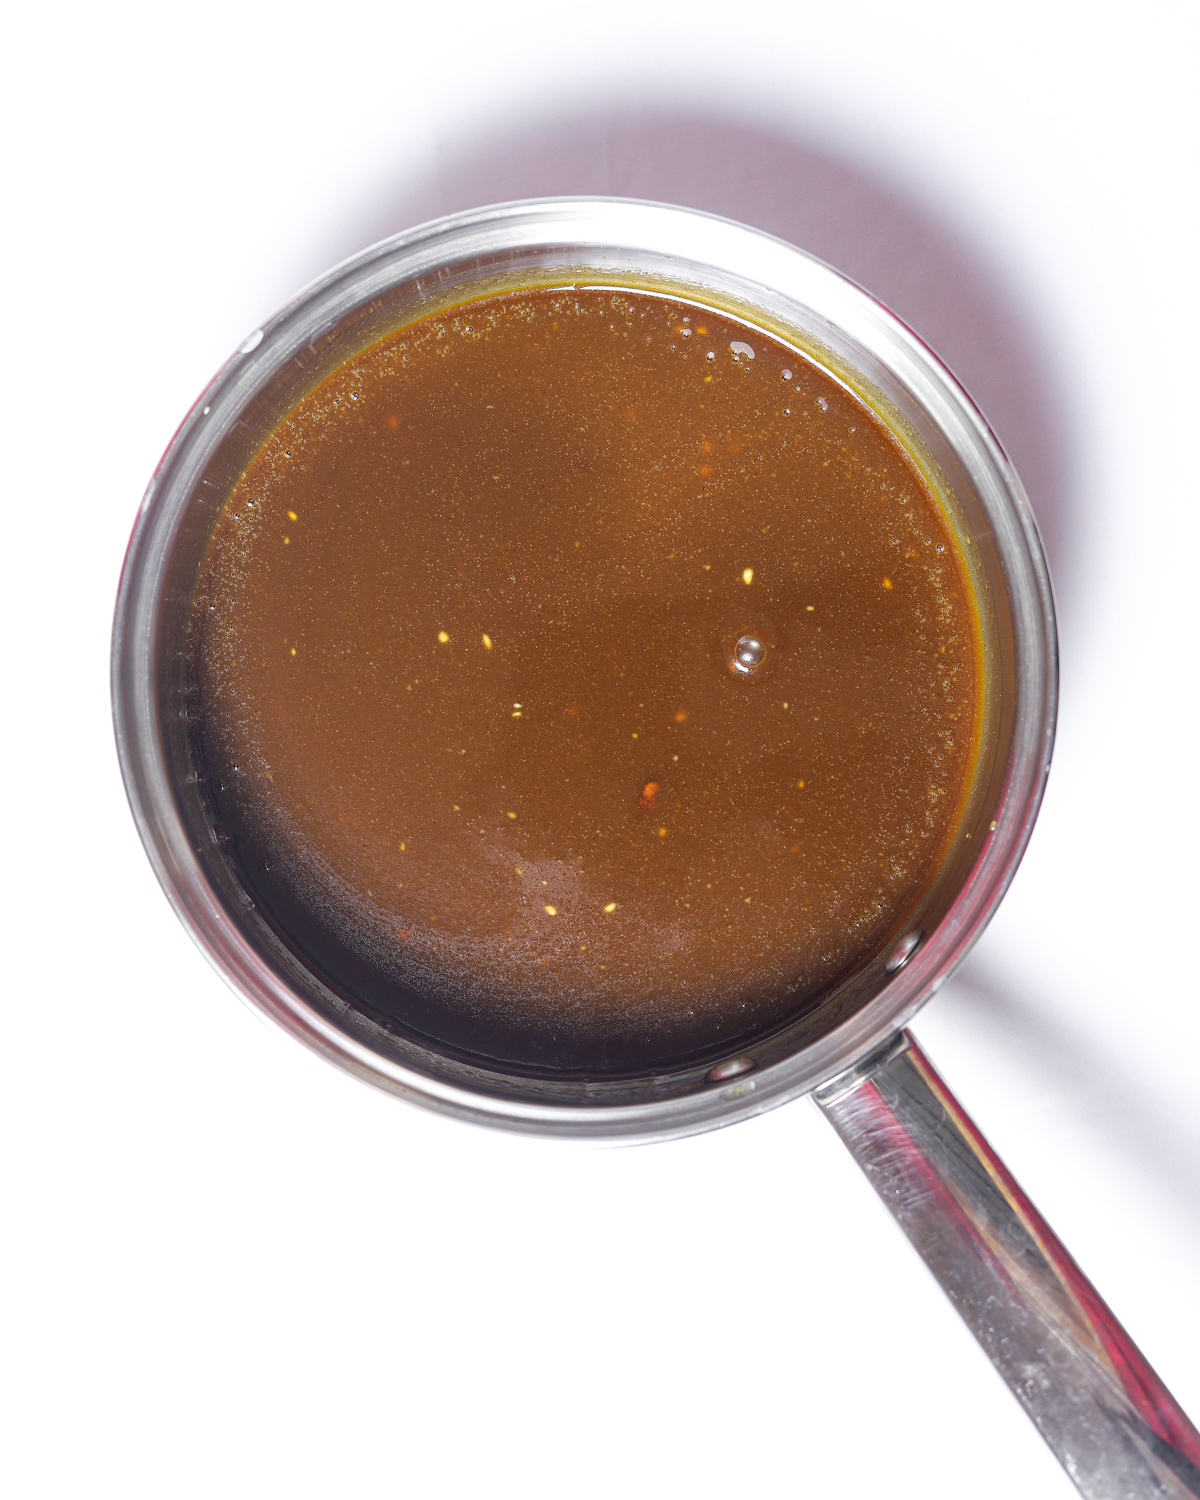 toffee sauce in a saucepan